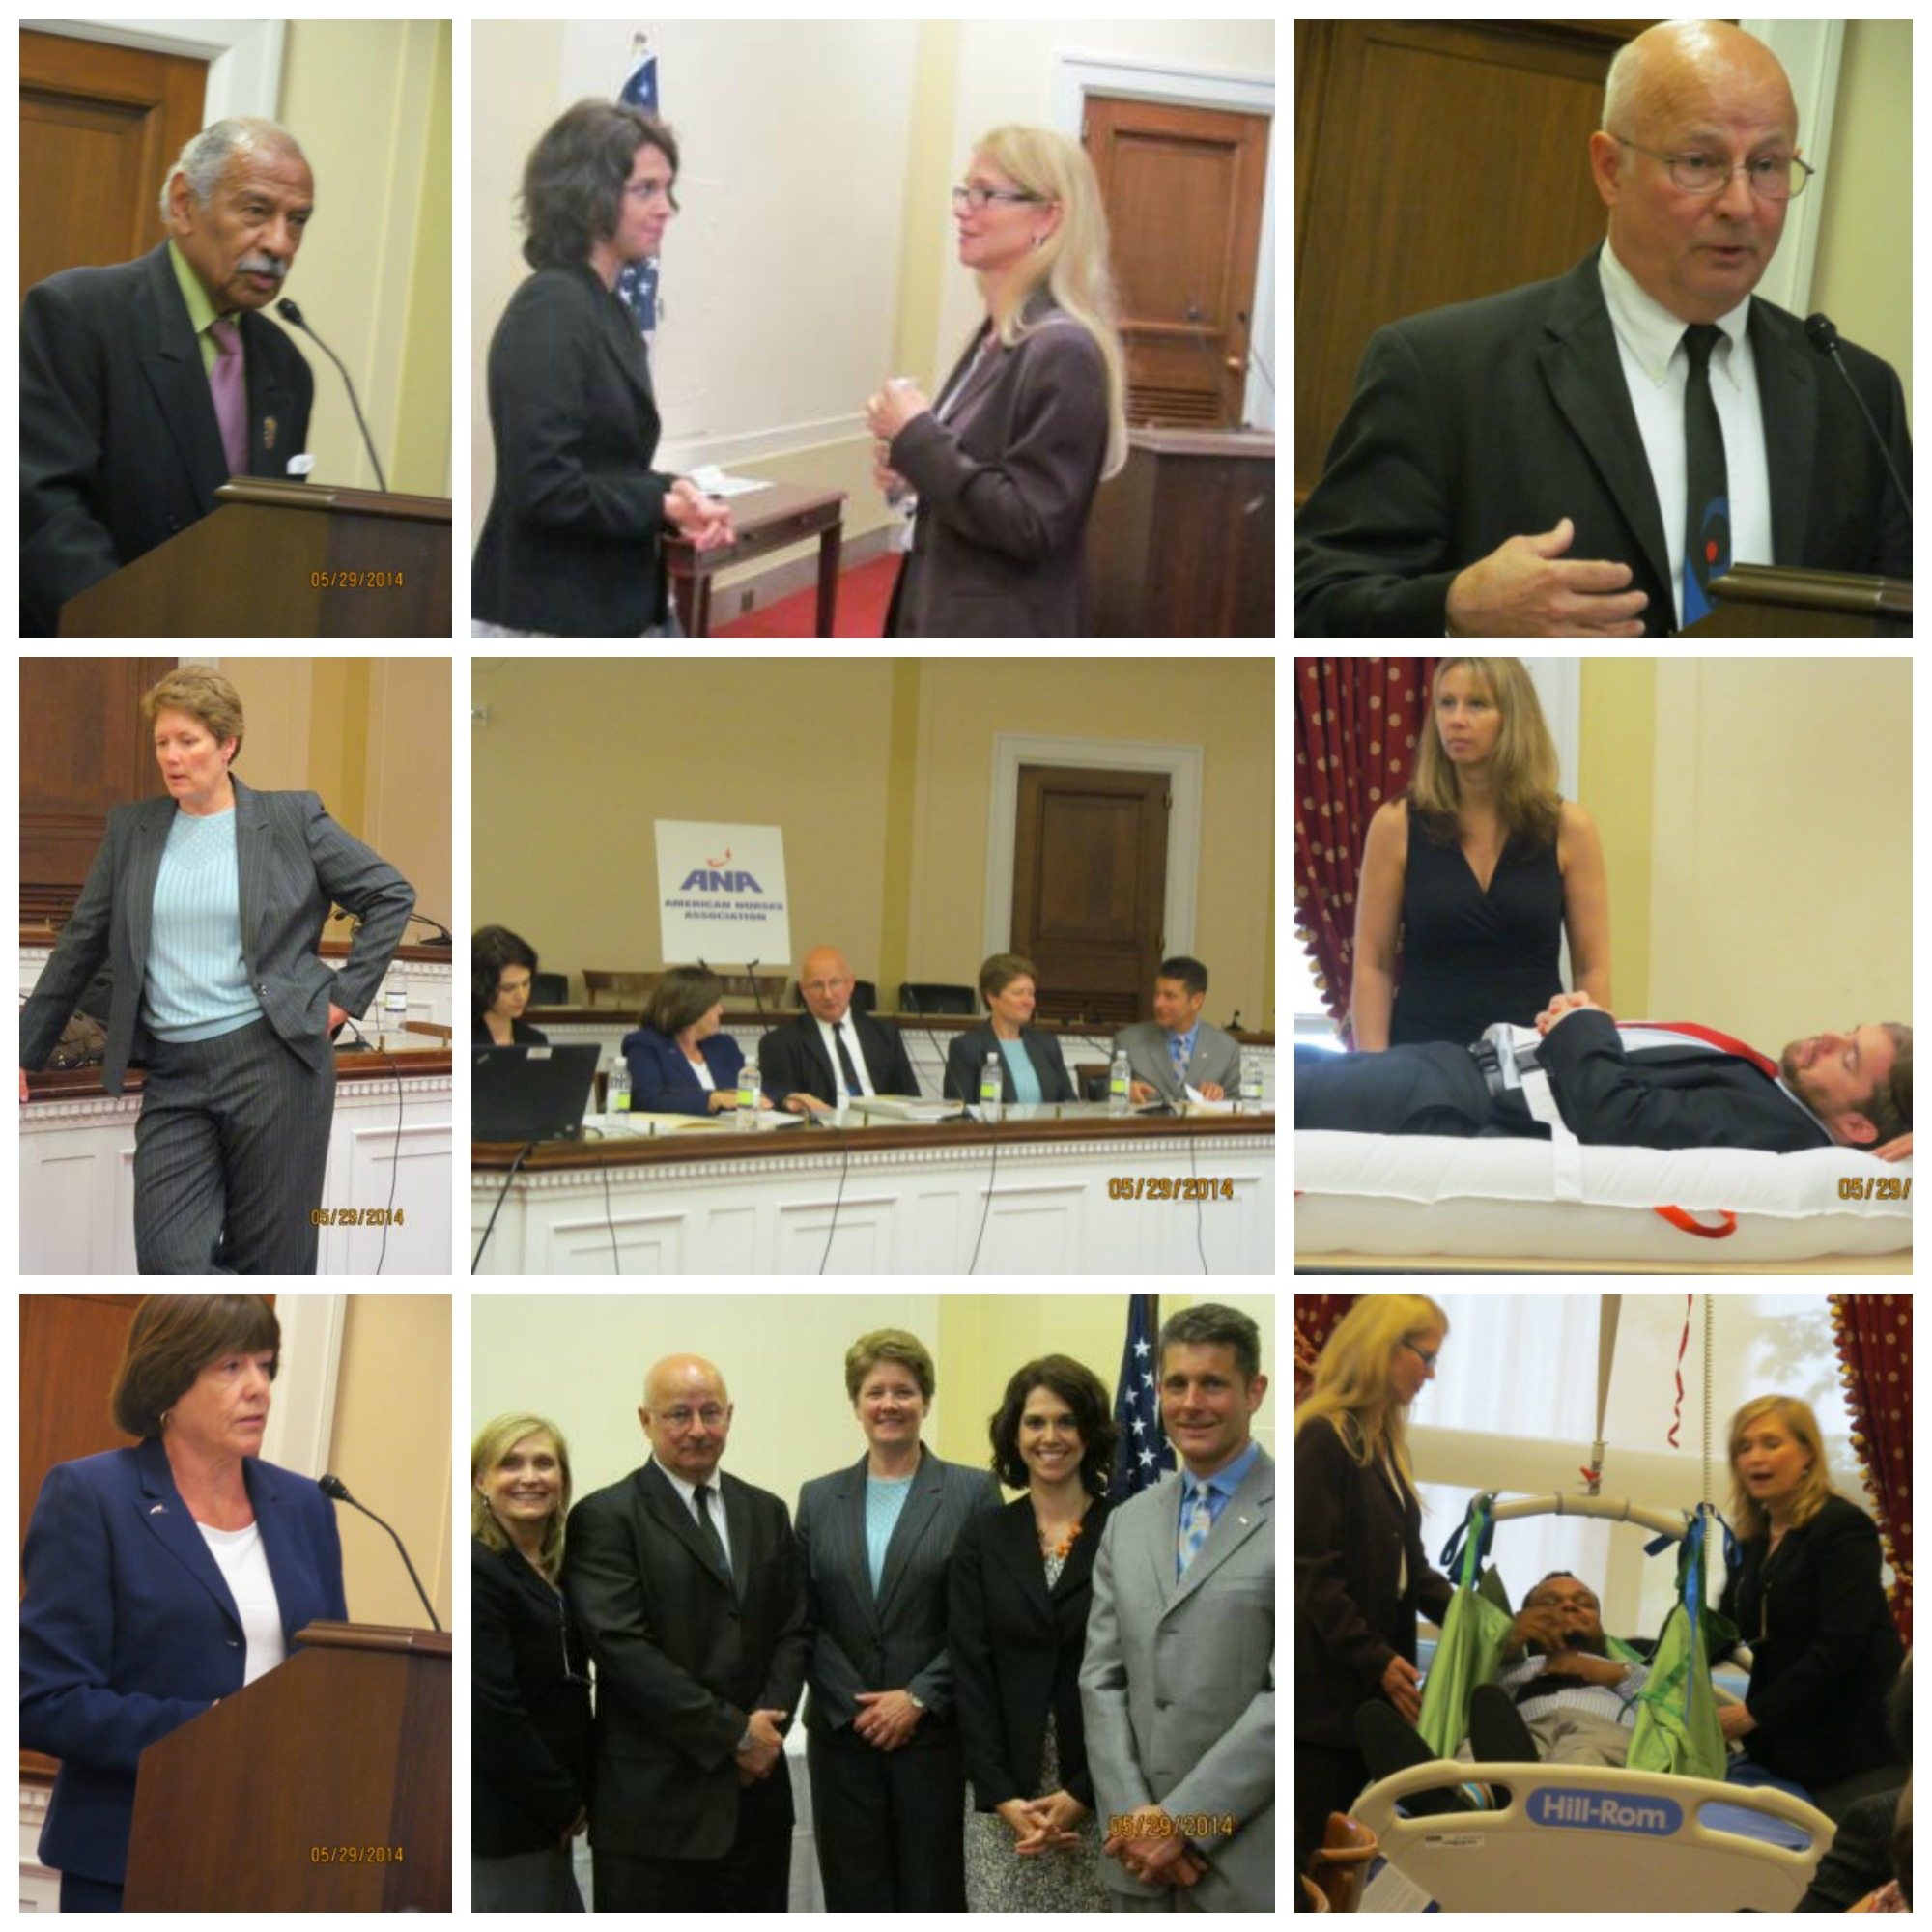 Congressional Meeting Collage 5-28-14